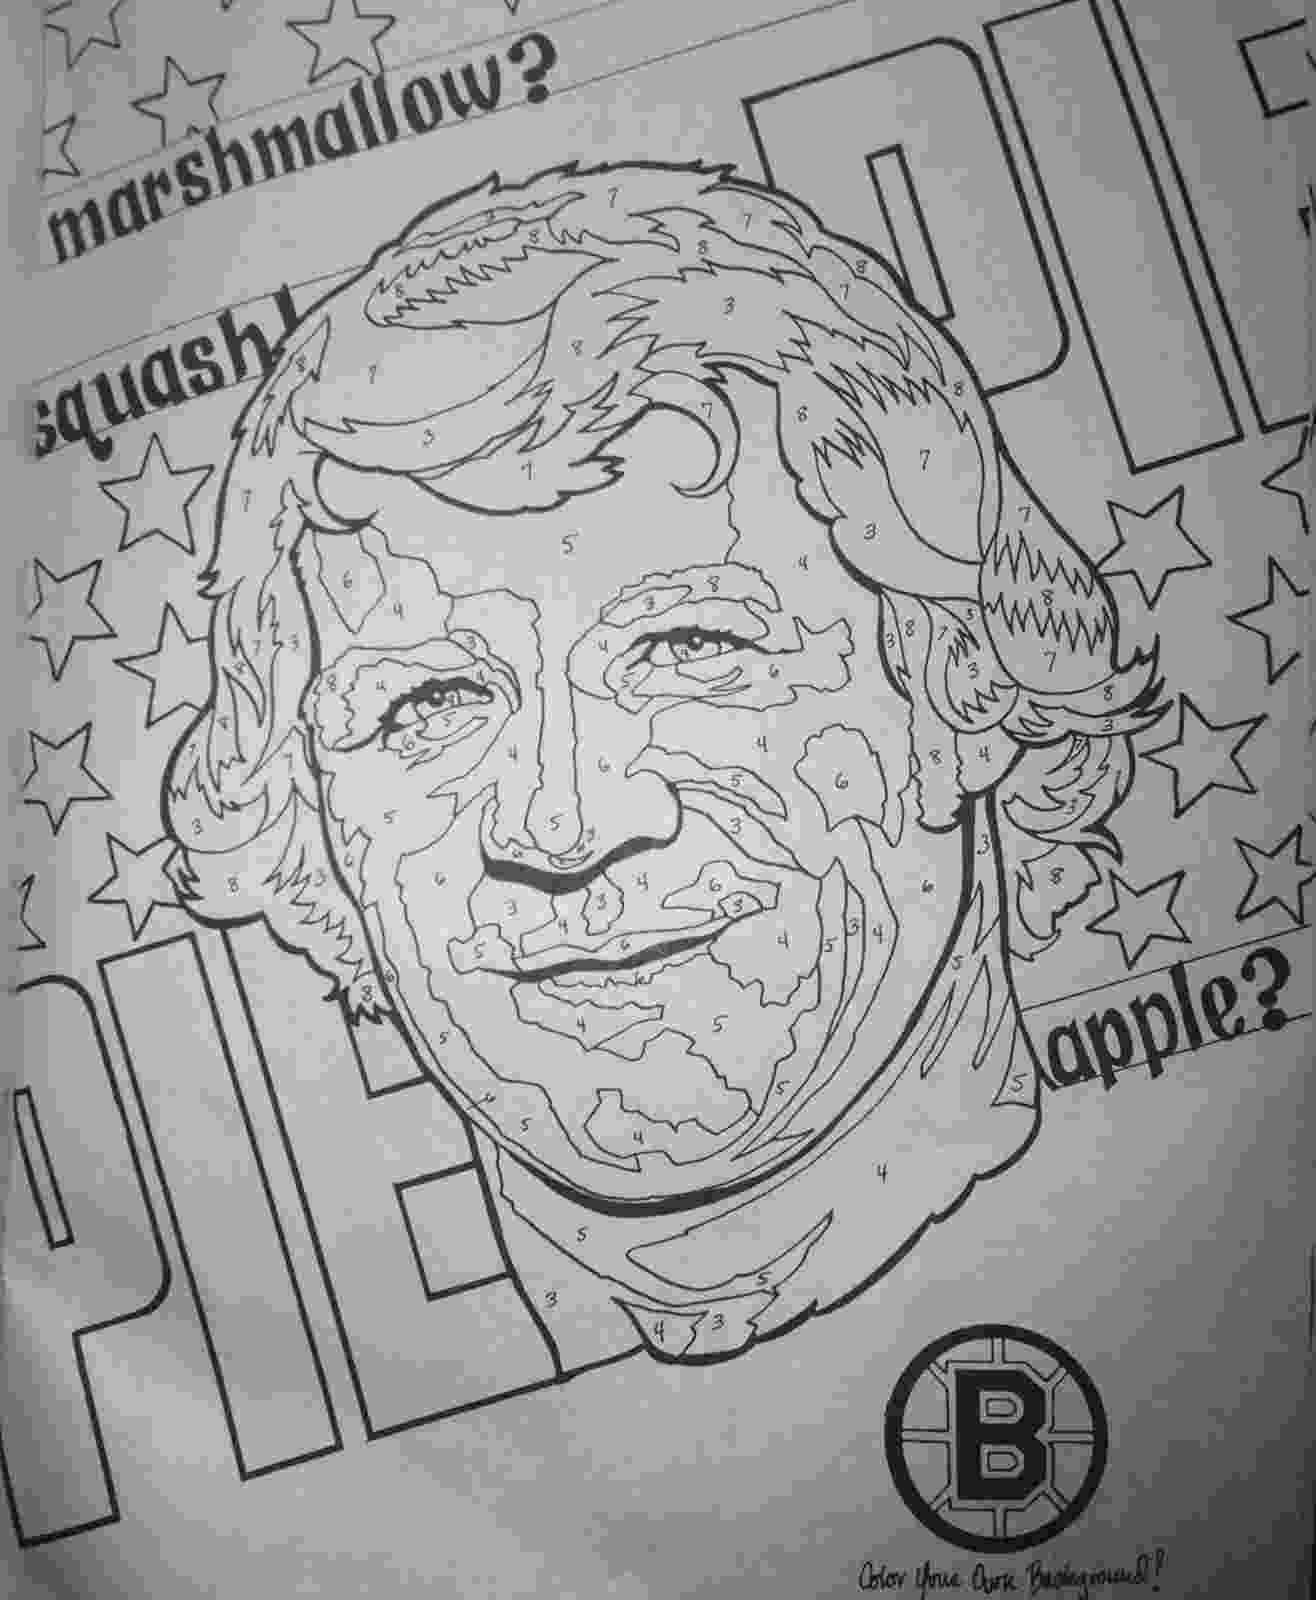 boston bruins coloring pages strikingly idea boston bruins coloring pages symbol coloring coloring boston bruins pages